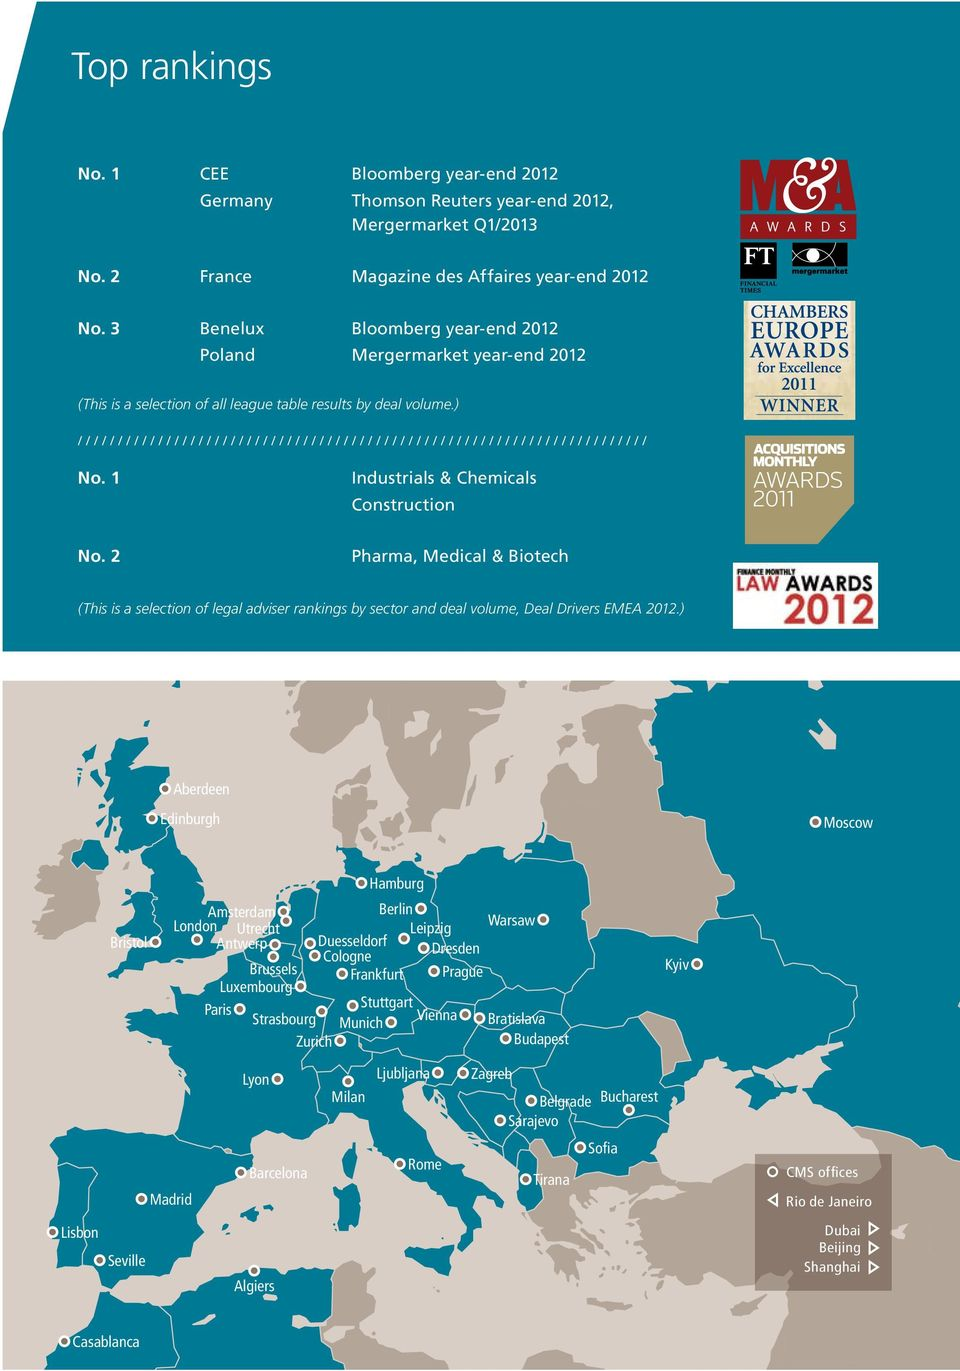 2 Pharma, Medical & Biotech (This is a selection of legal adviser rankings by sector and deal volume, Deal Drivers EMEA 2012.